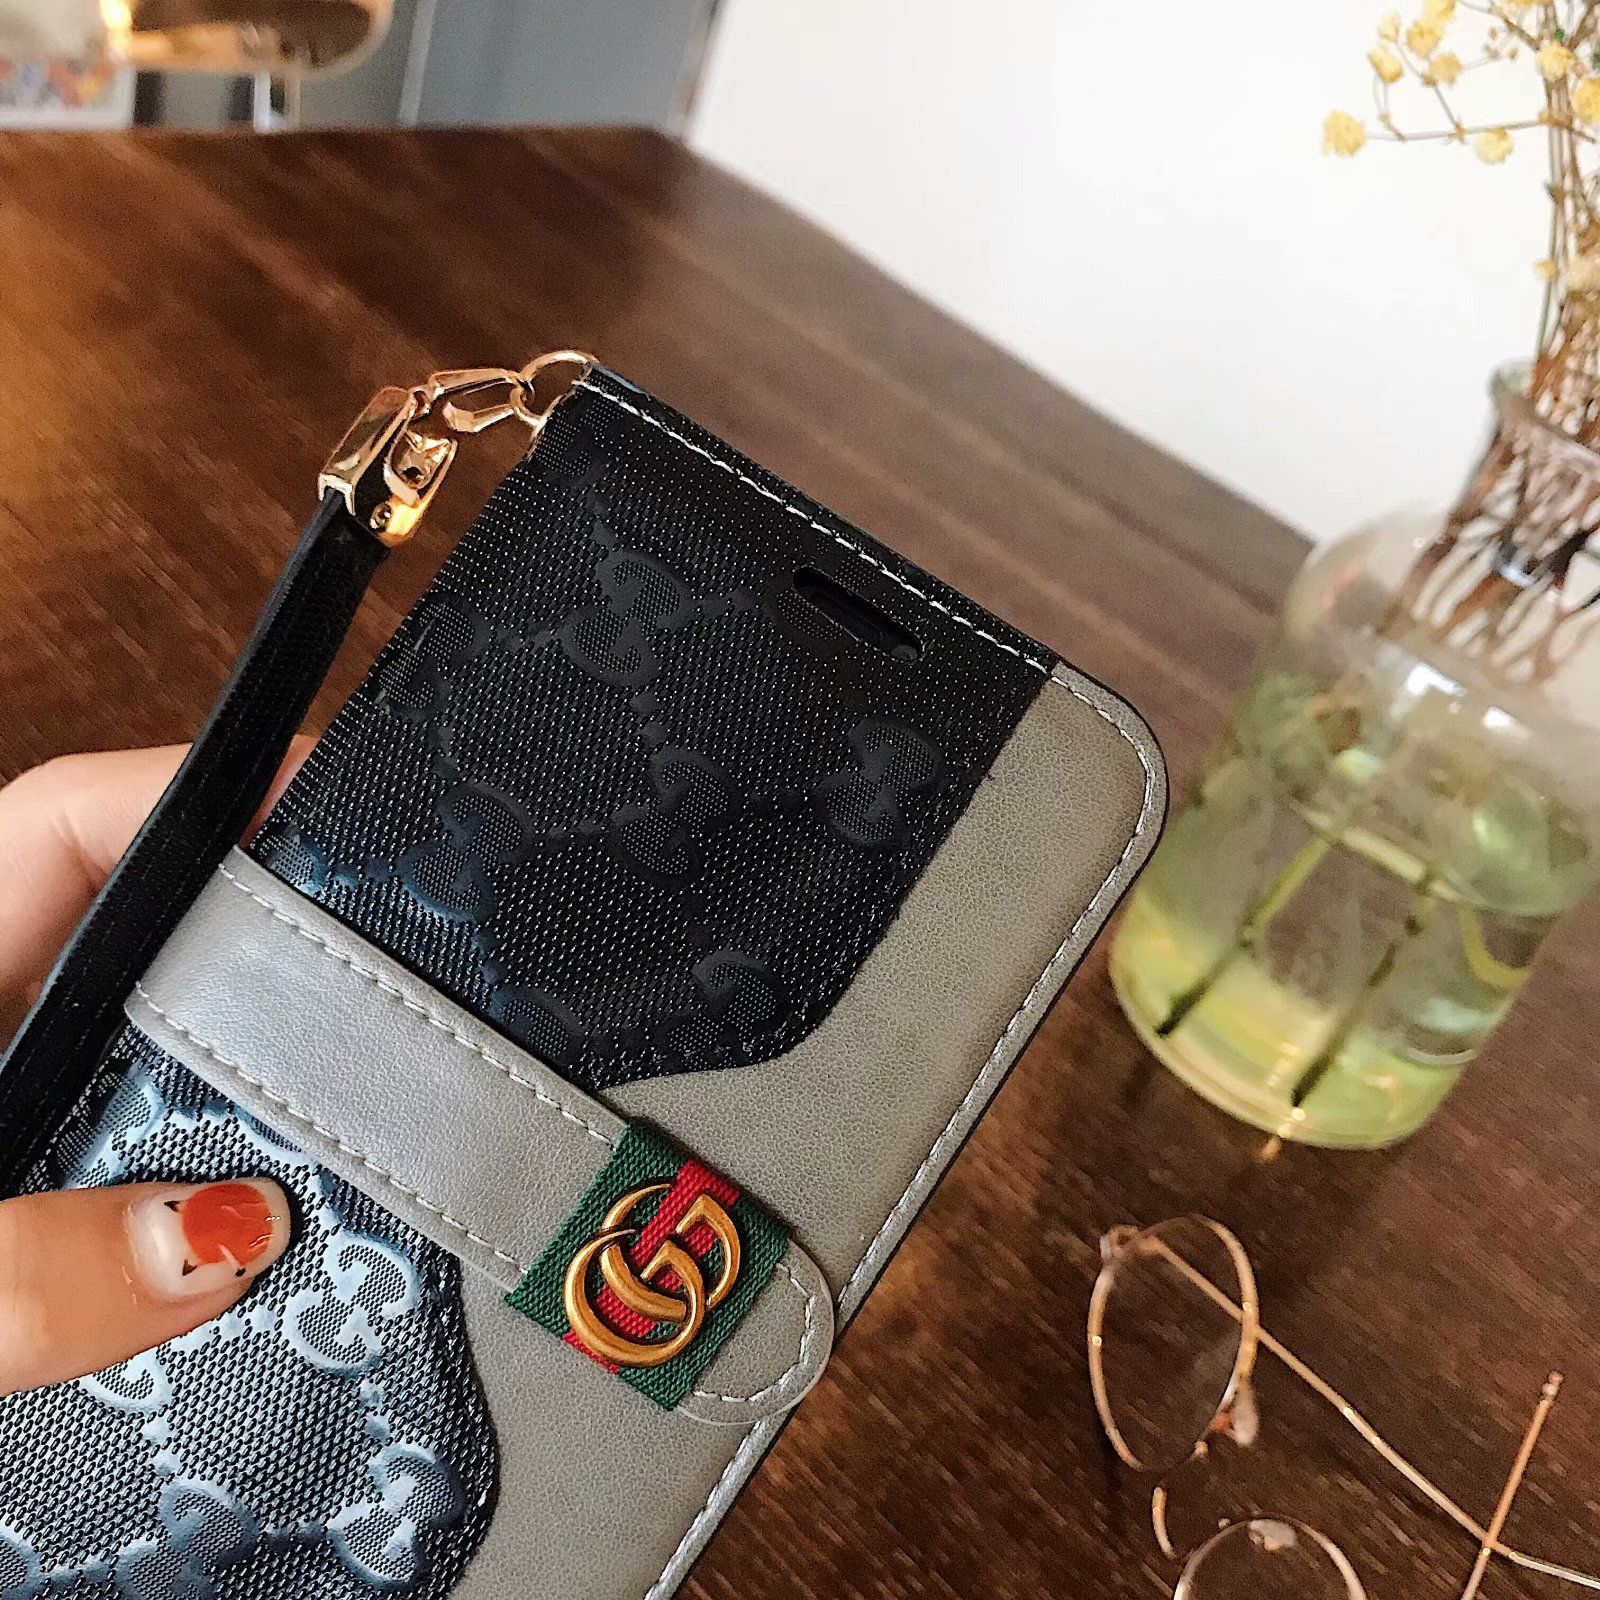 Luxury Gucci Wallet Case for iPhone XsMax/XR/XS/X/8/7/6S/6